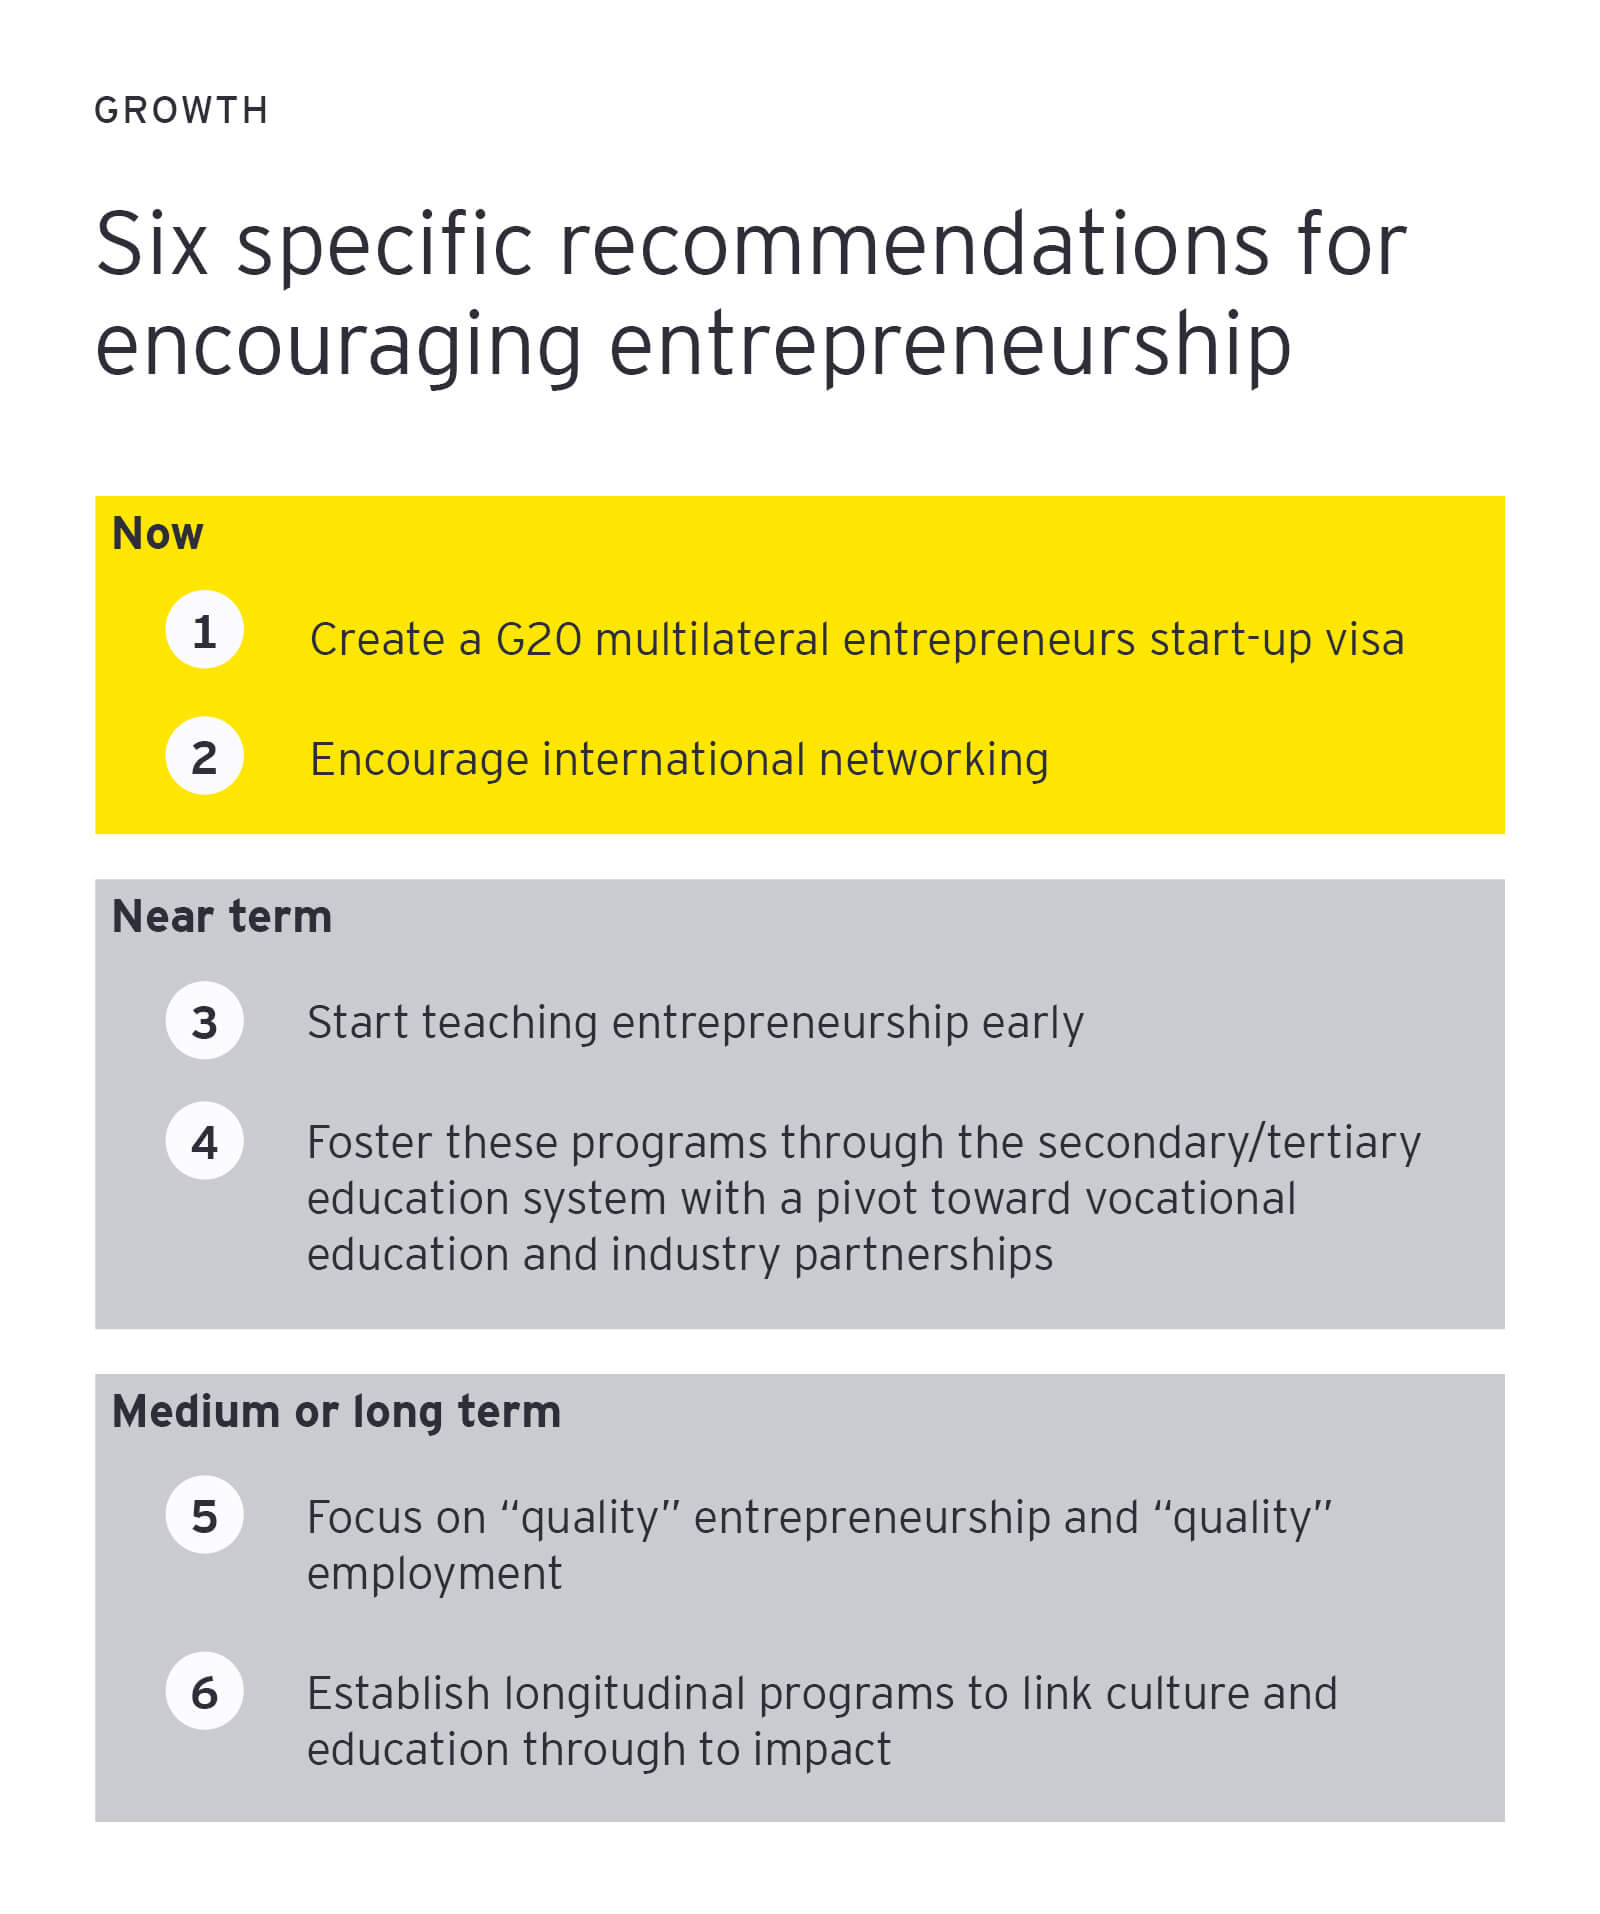 Six specific recommendations for encouraging entrepreneurship